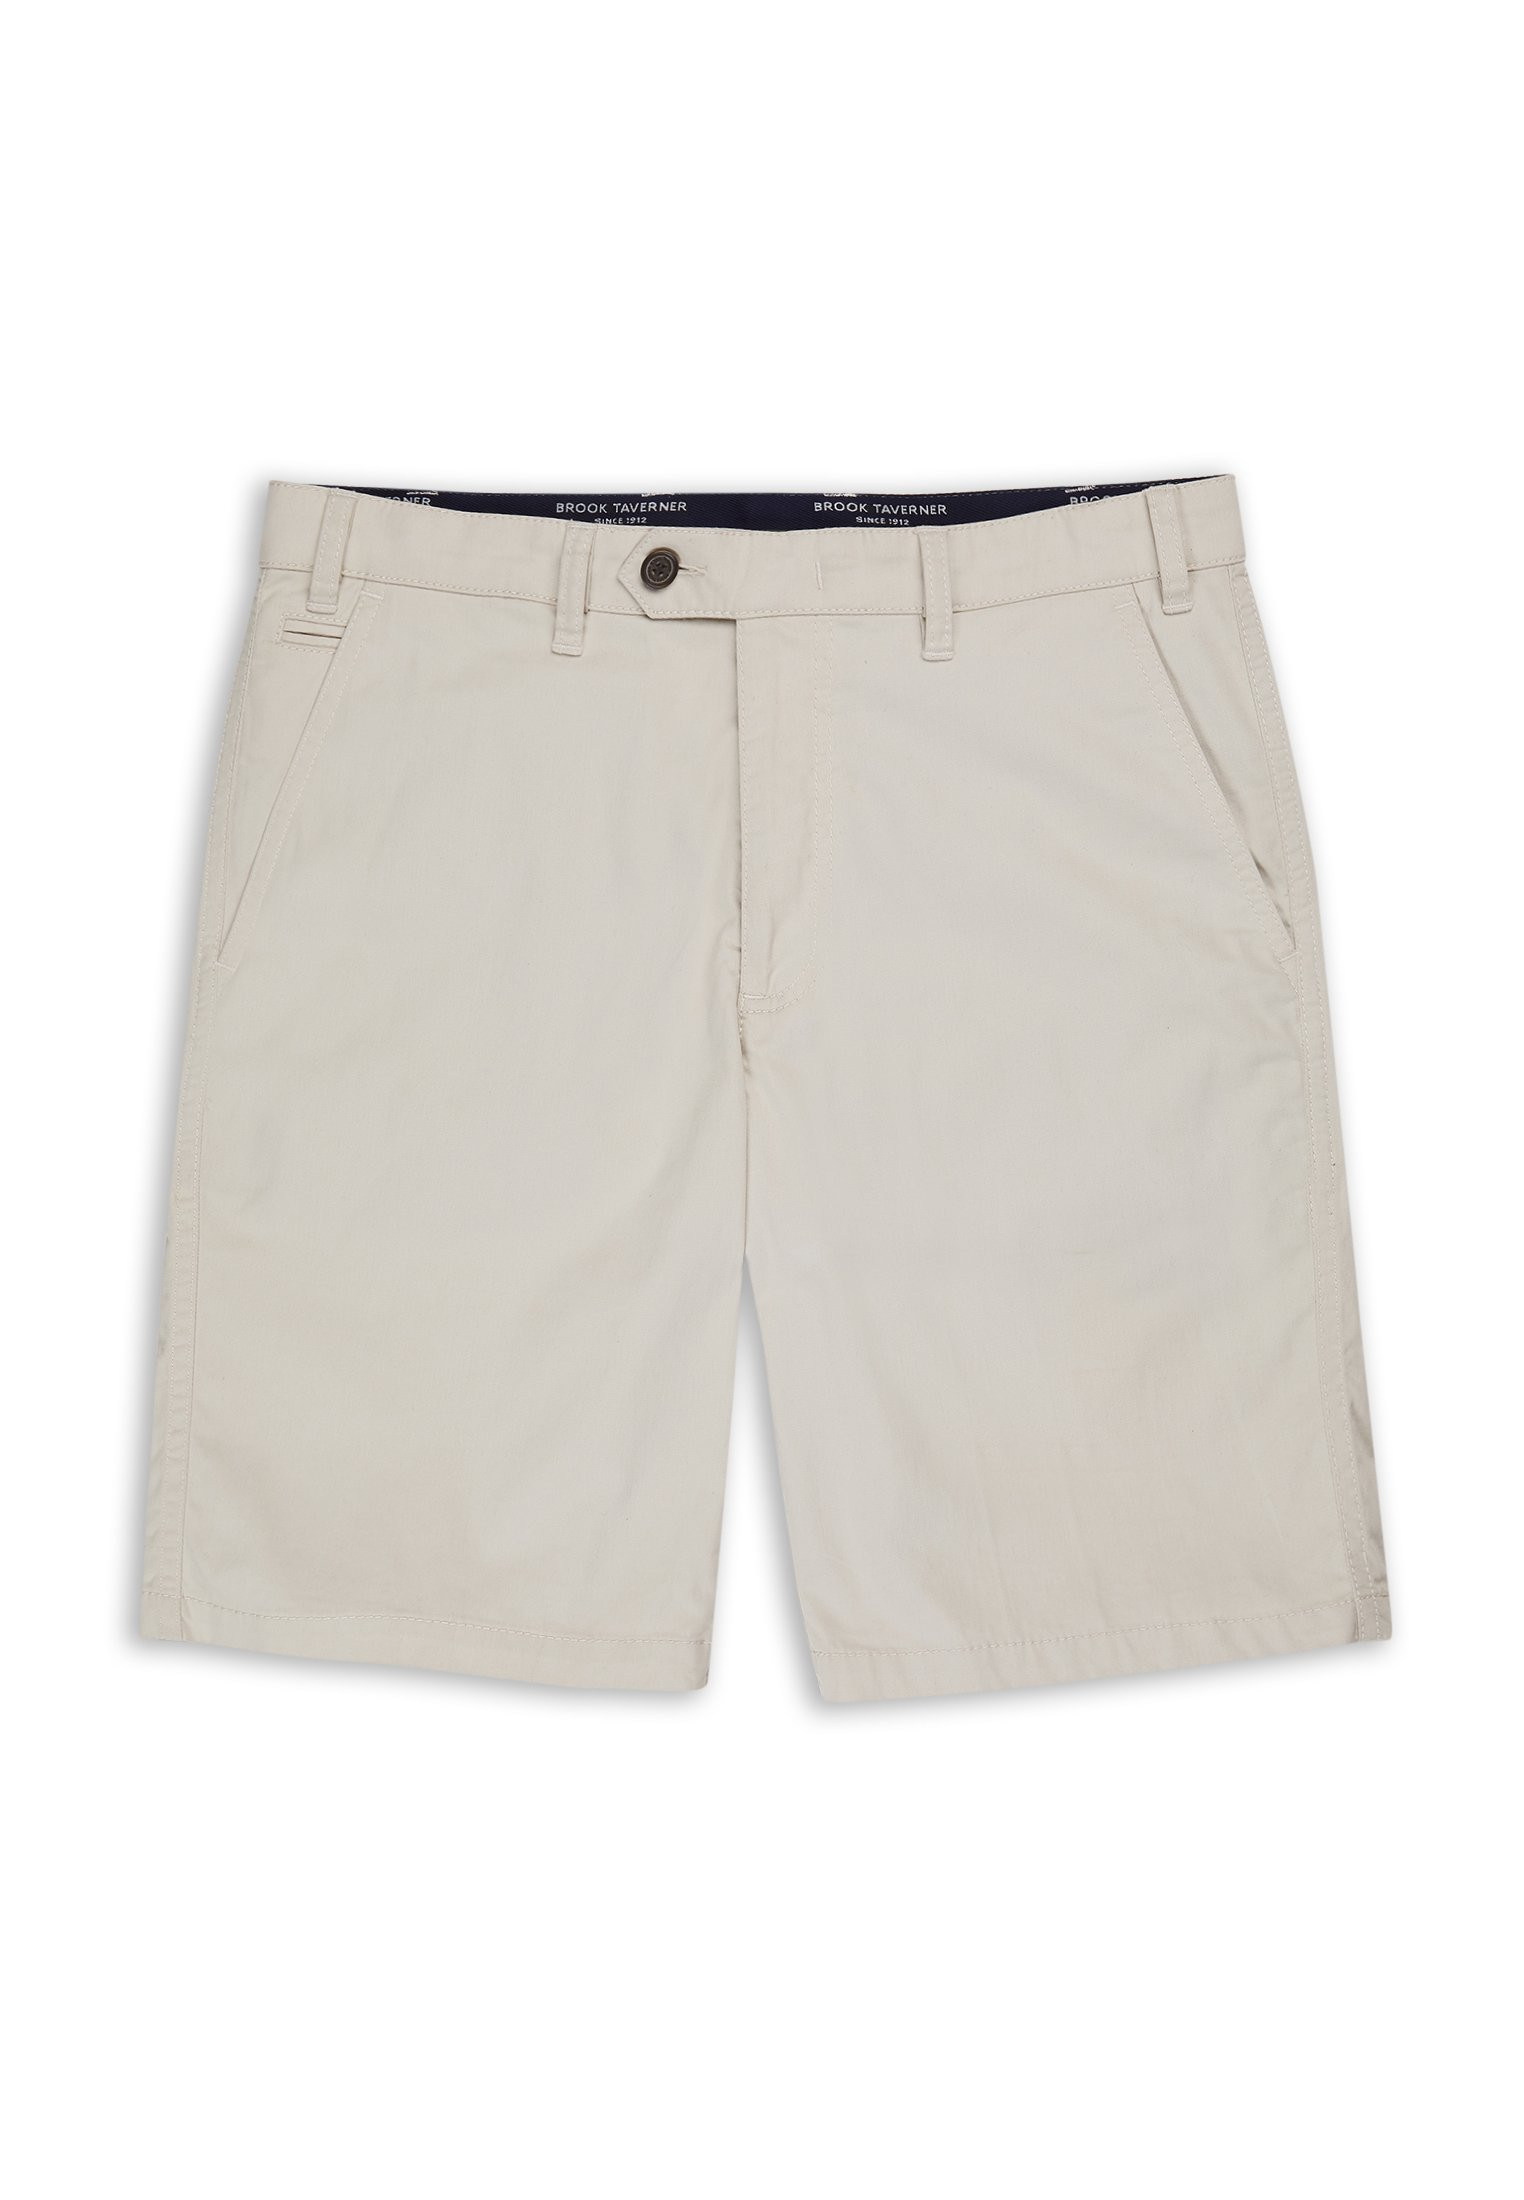 Stone Ashdown Chino Shorts